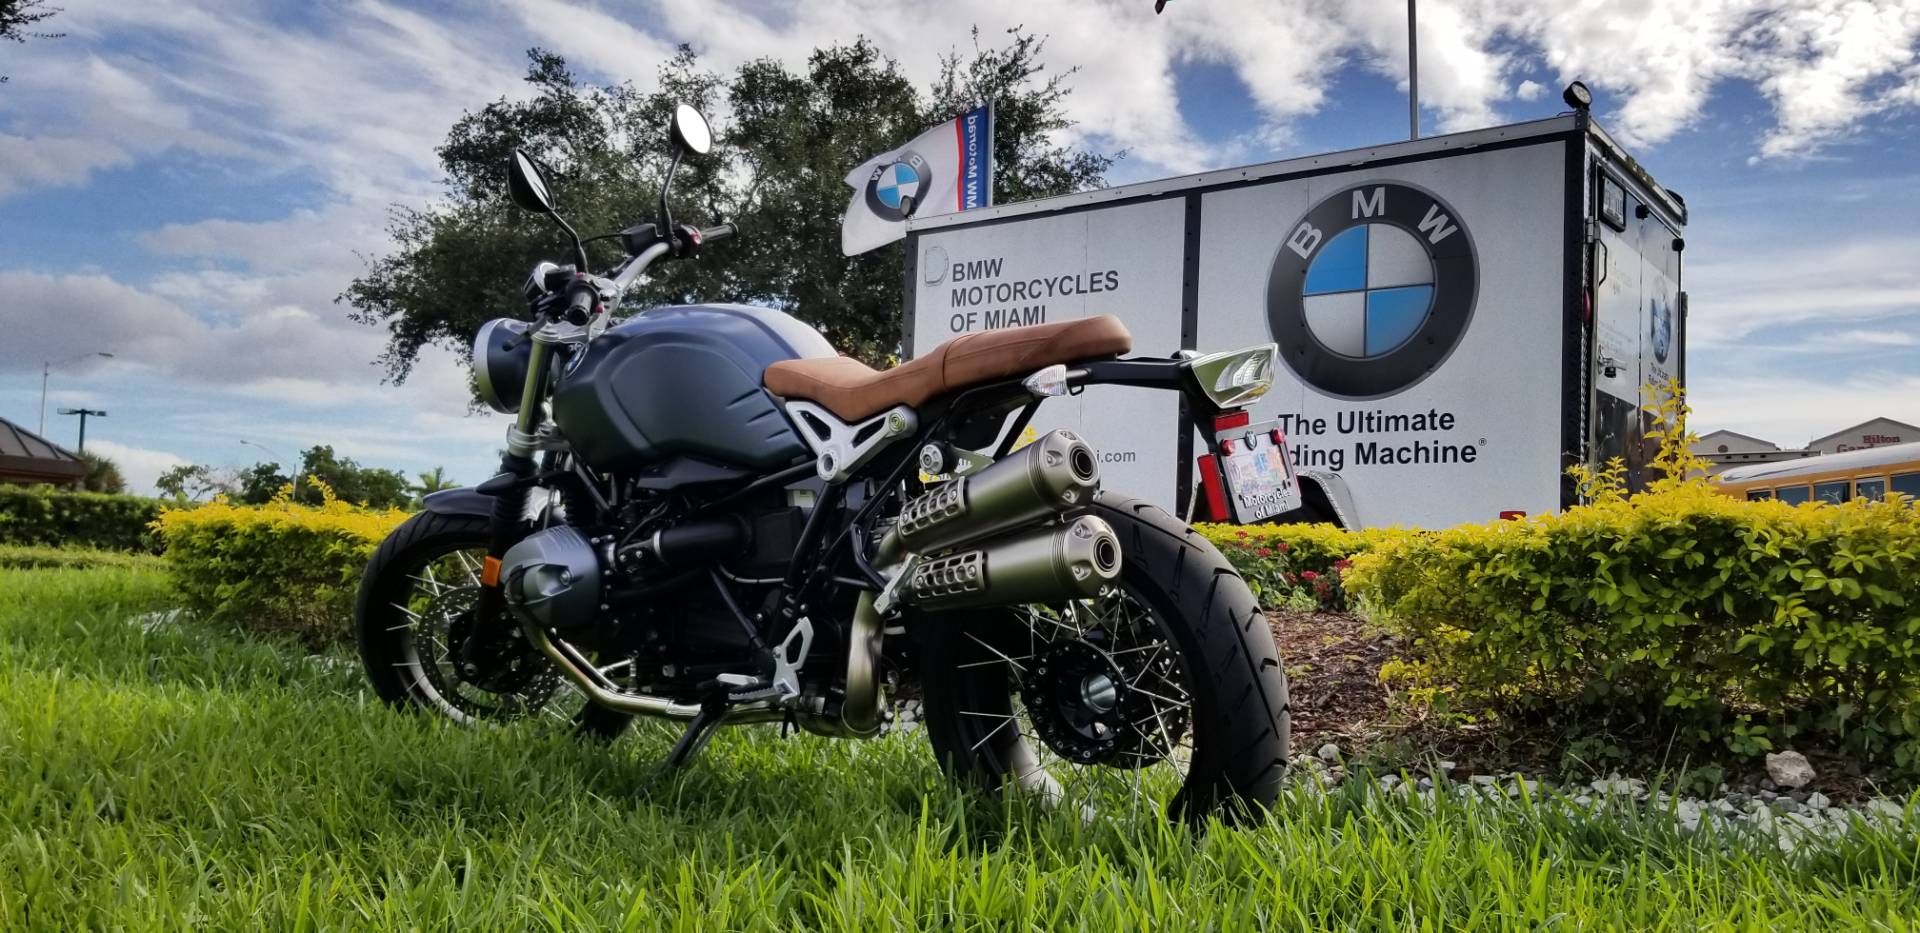 New 2019 BMW R NineT Scrambler for sale, BMW for sale, BMW Motorcycle Café Racer, new BMW Scrambler, Srambler, BMW. BMW Motorcycles of Miami, Motorcycles of Miami